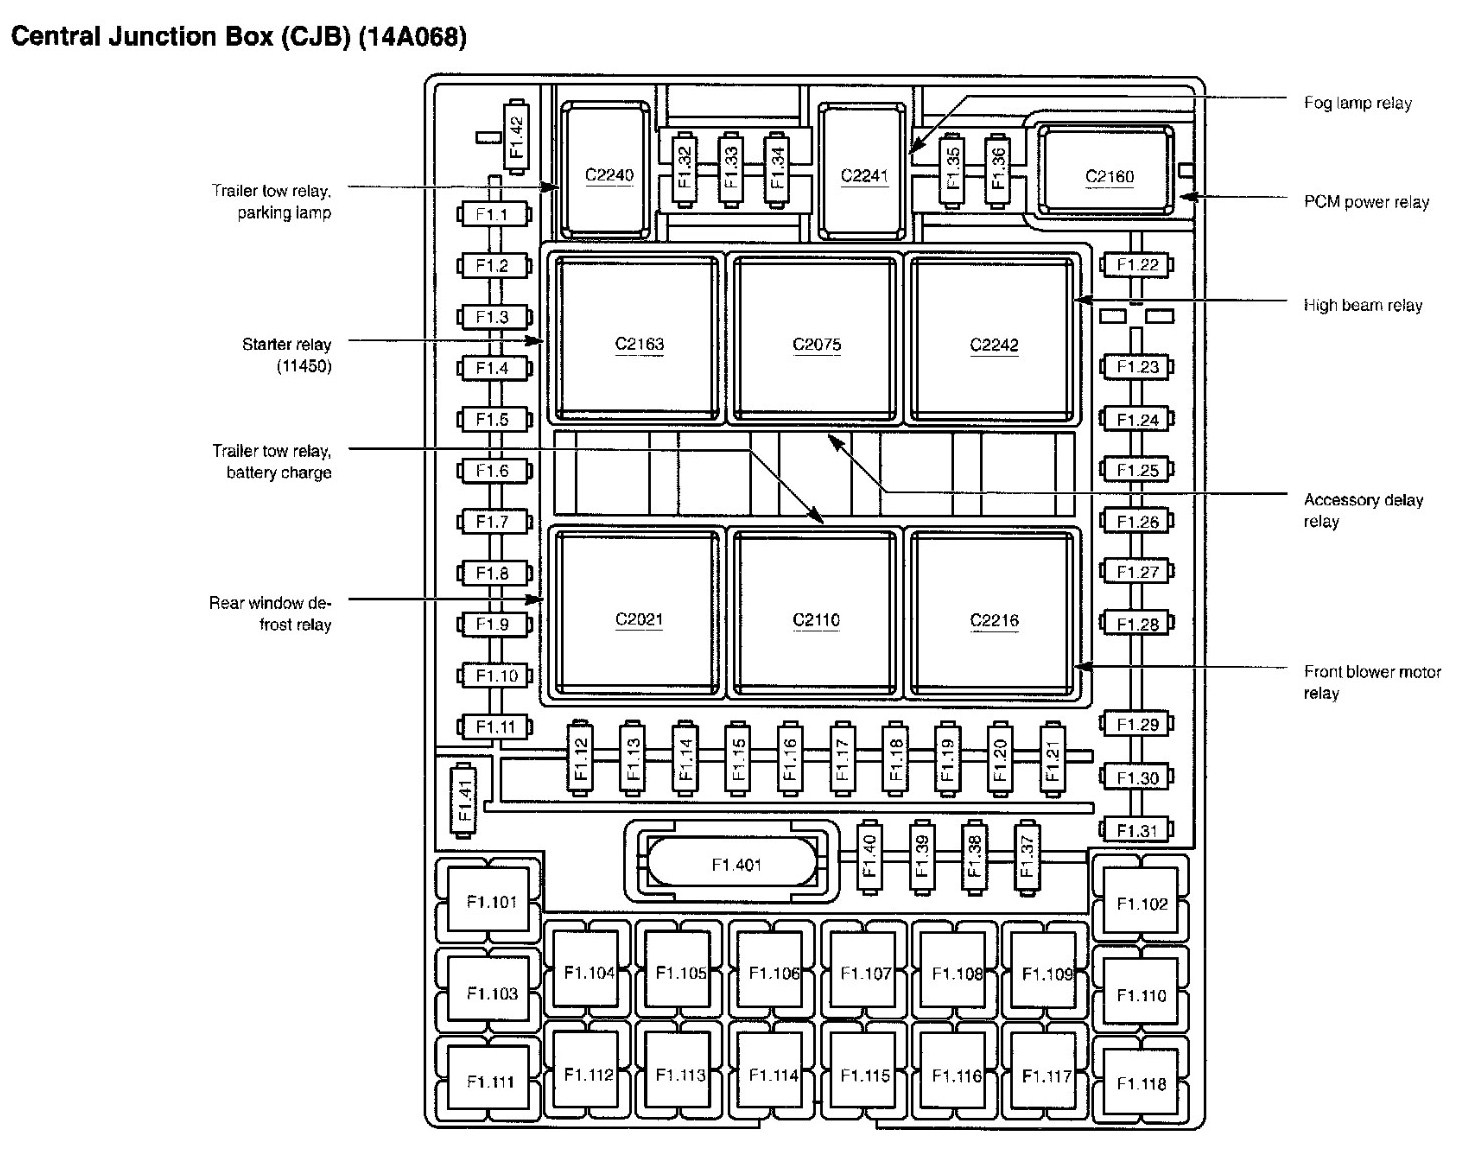 Gm Obd Ii Wiring Diagram Door Locks Block And Schematic Diagrams Ford 01 Ranger Fuse Box Free Engine Image For User Honda